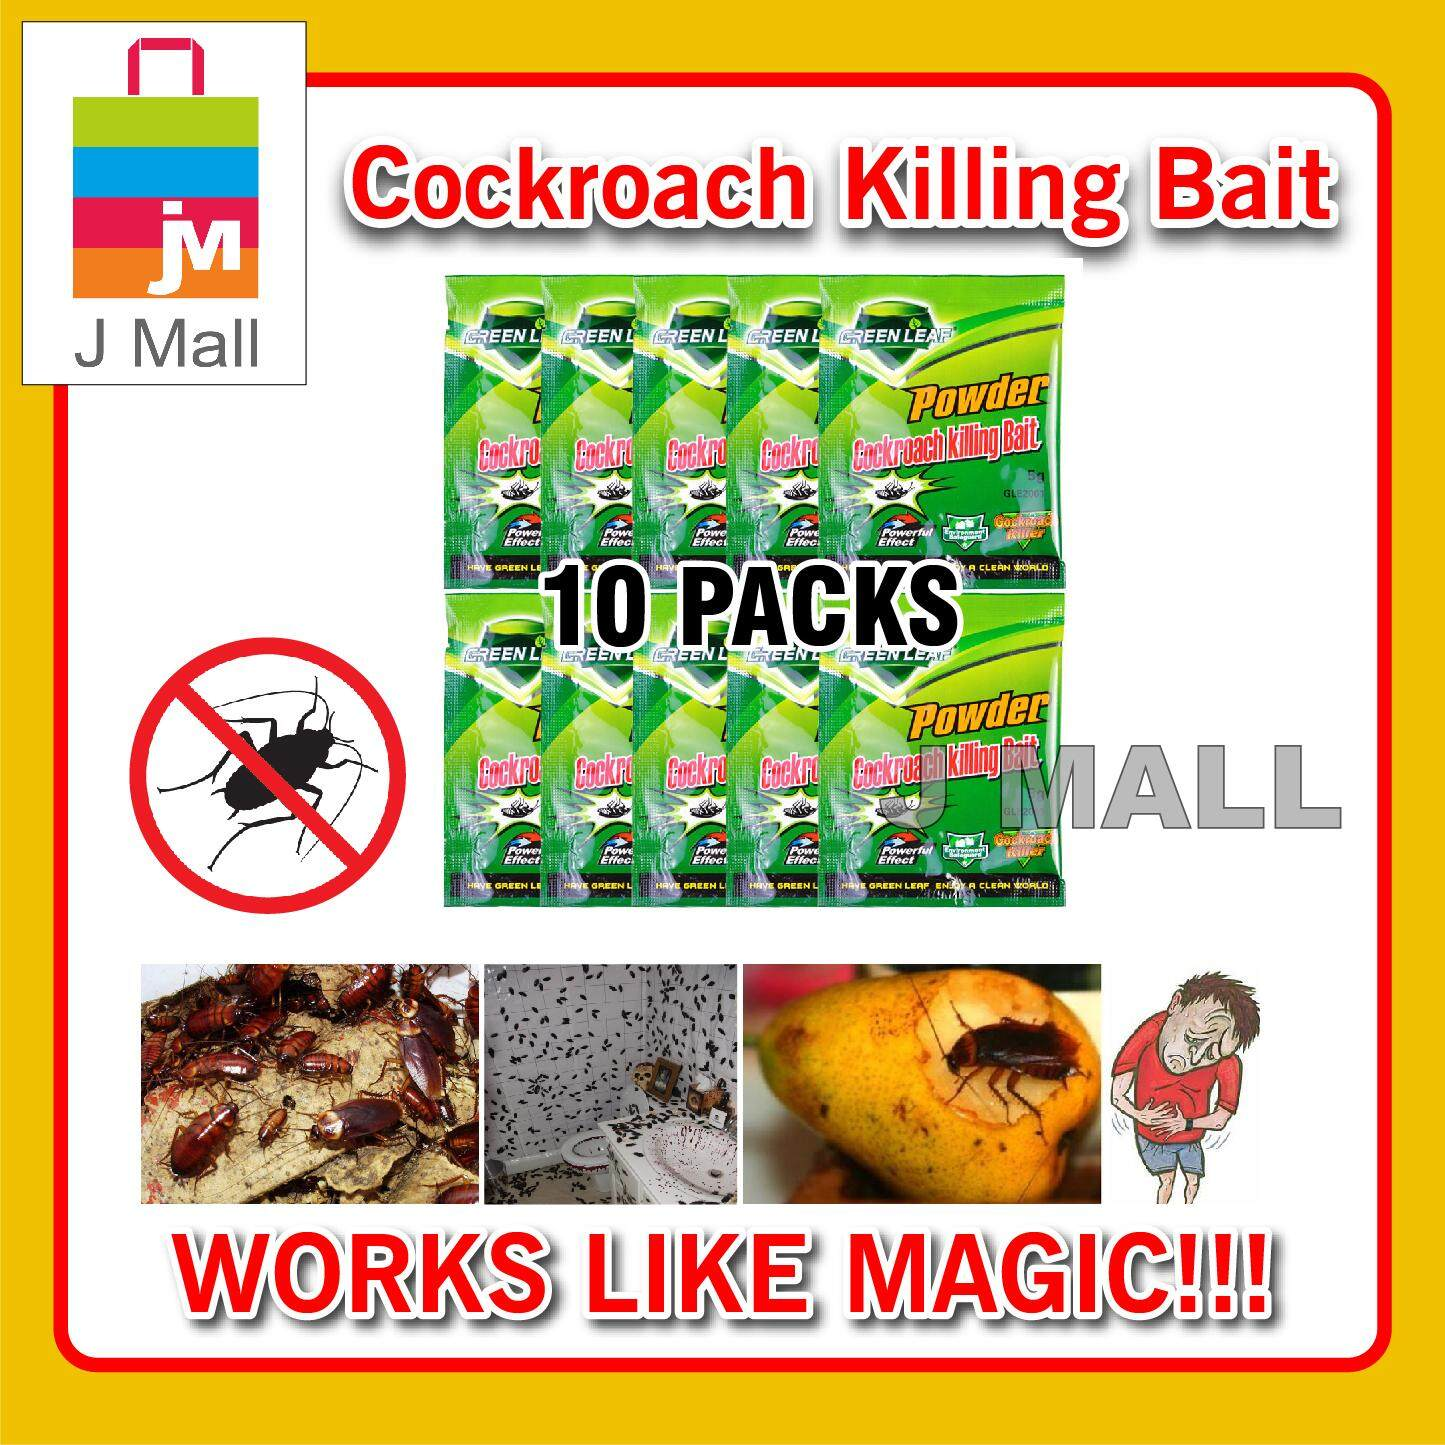 Powder Ant Killing Bait 10 Packs / Cockroach Killing Bait 10 Packs By J Mall.